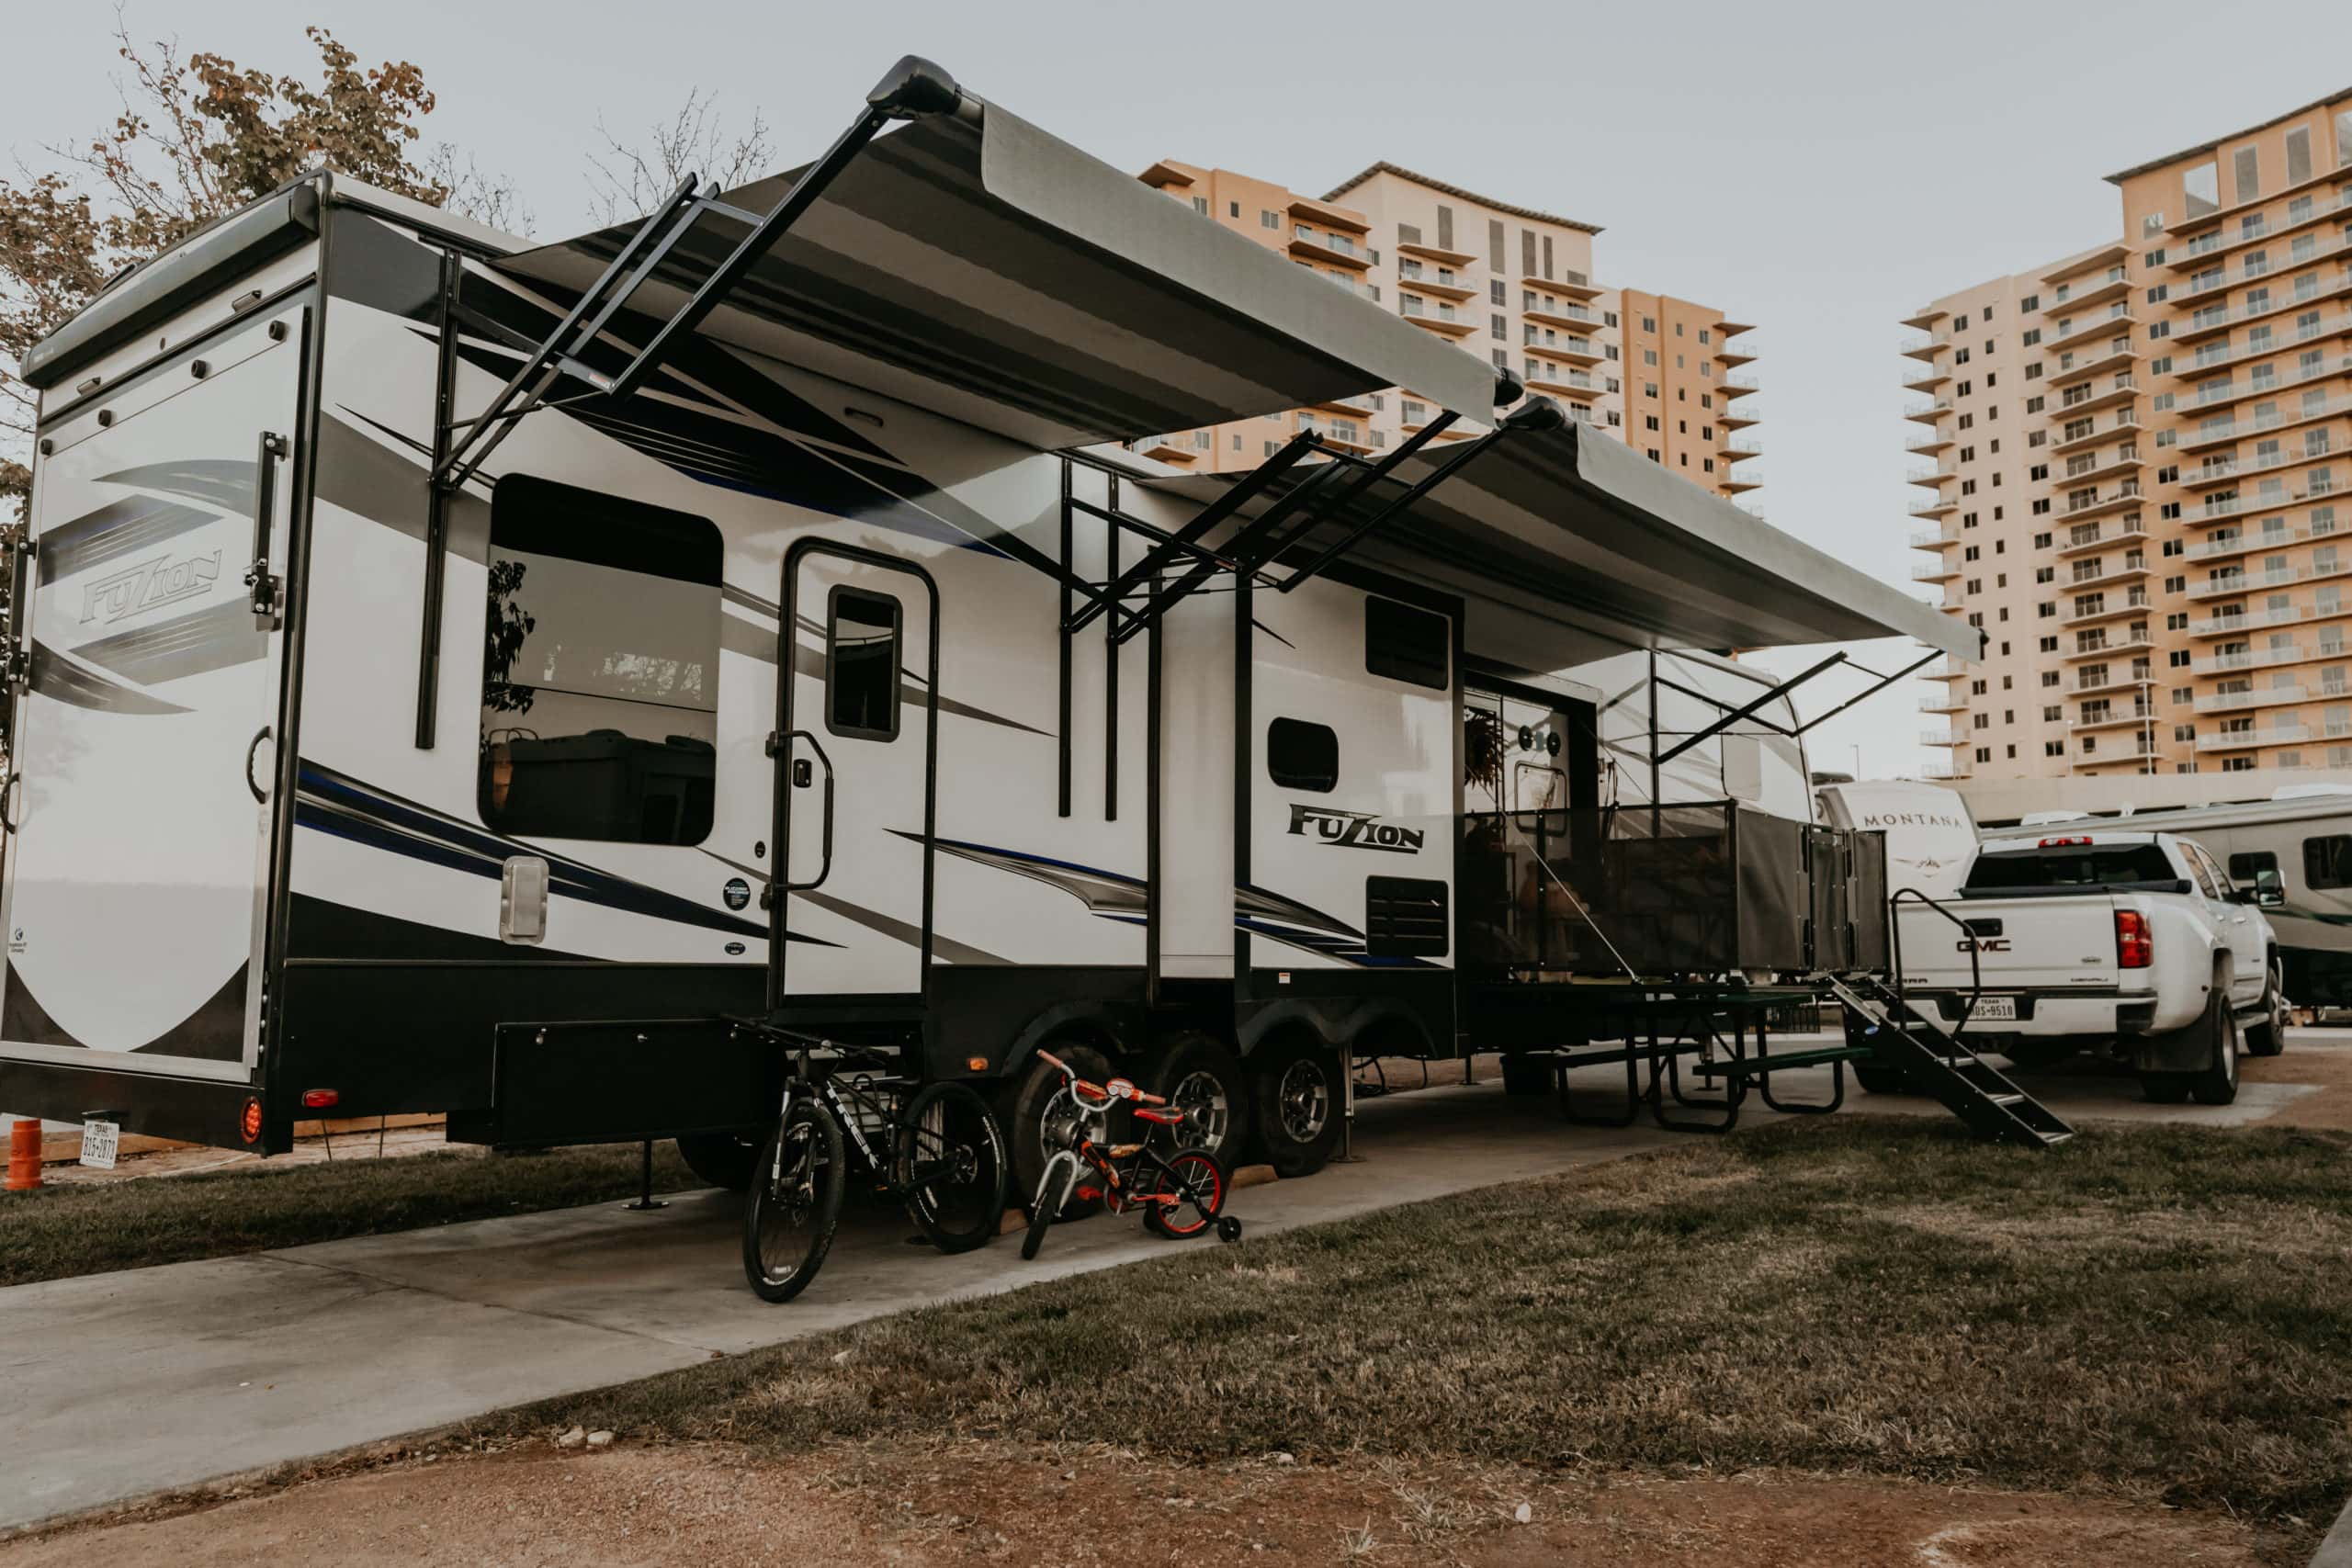 The Best Urban RV Campgrounds Near Popular U.S. Cities